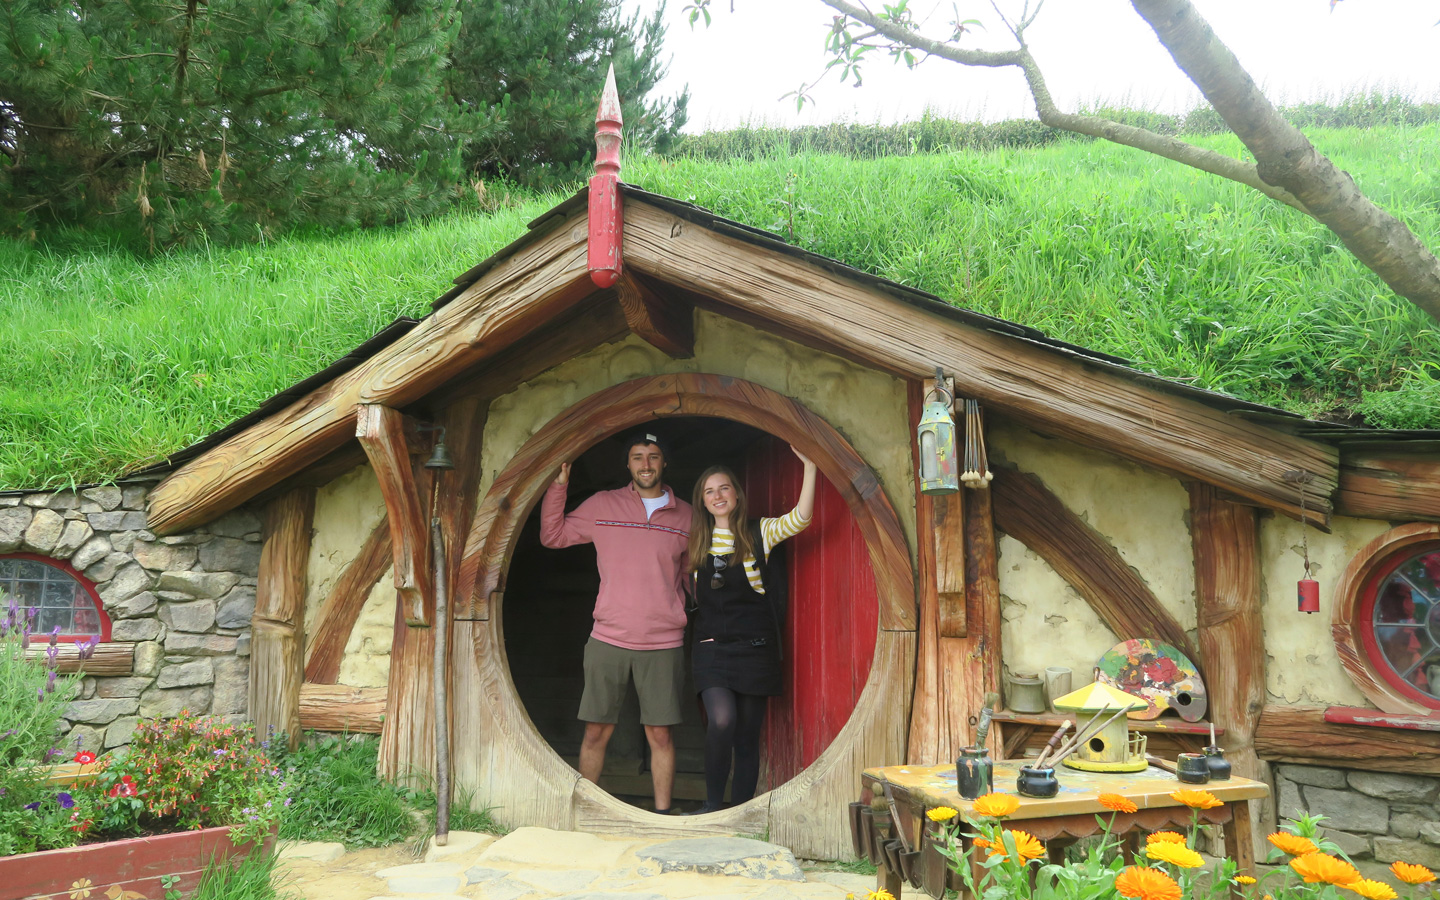 melissa carne and sam gill in hobbit house door in hobbiton